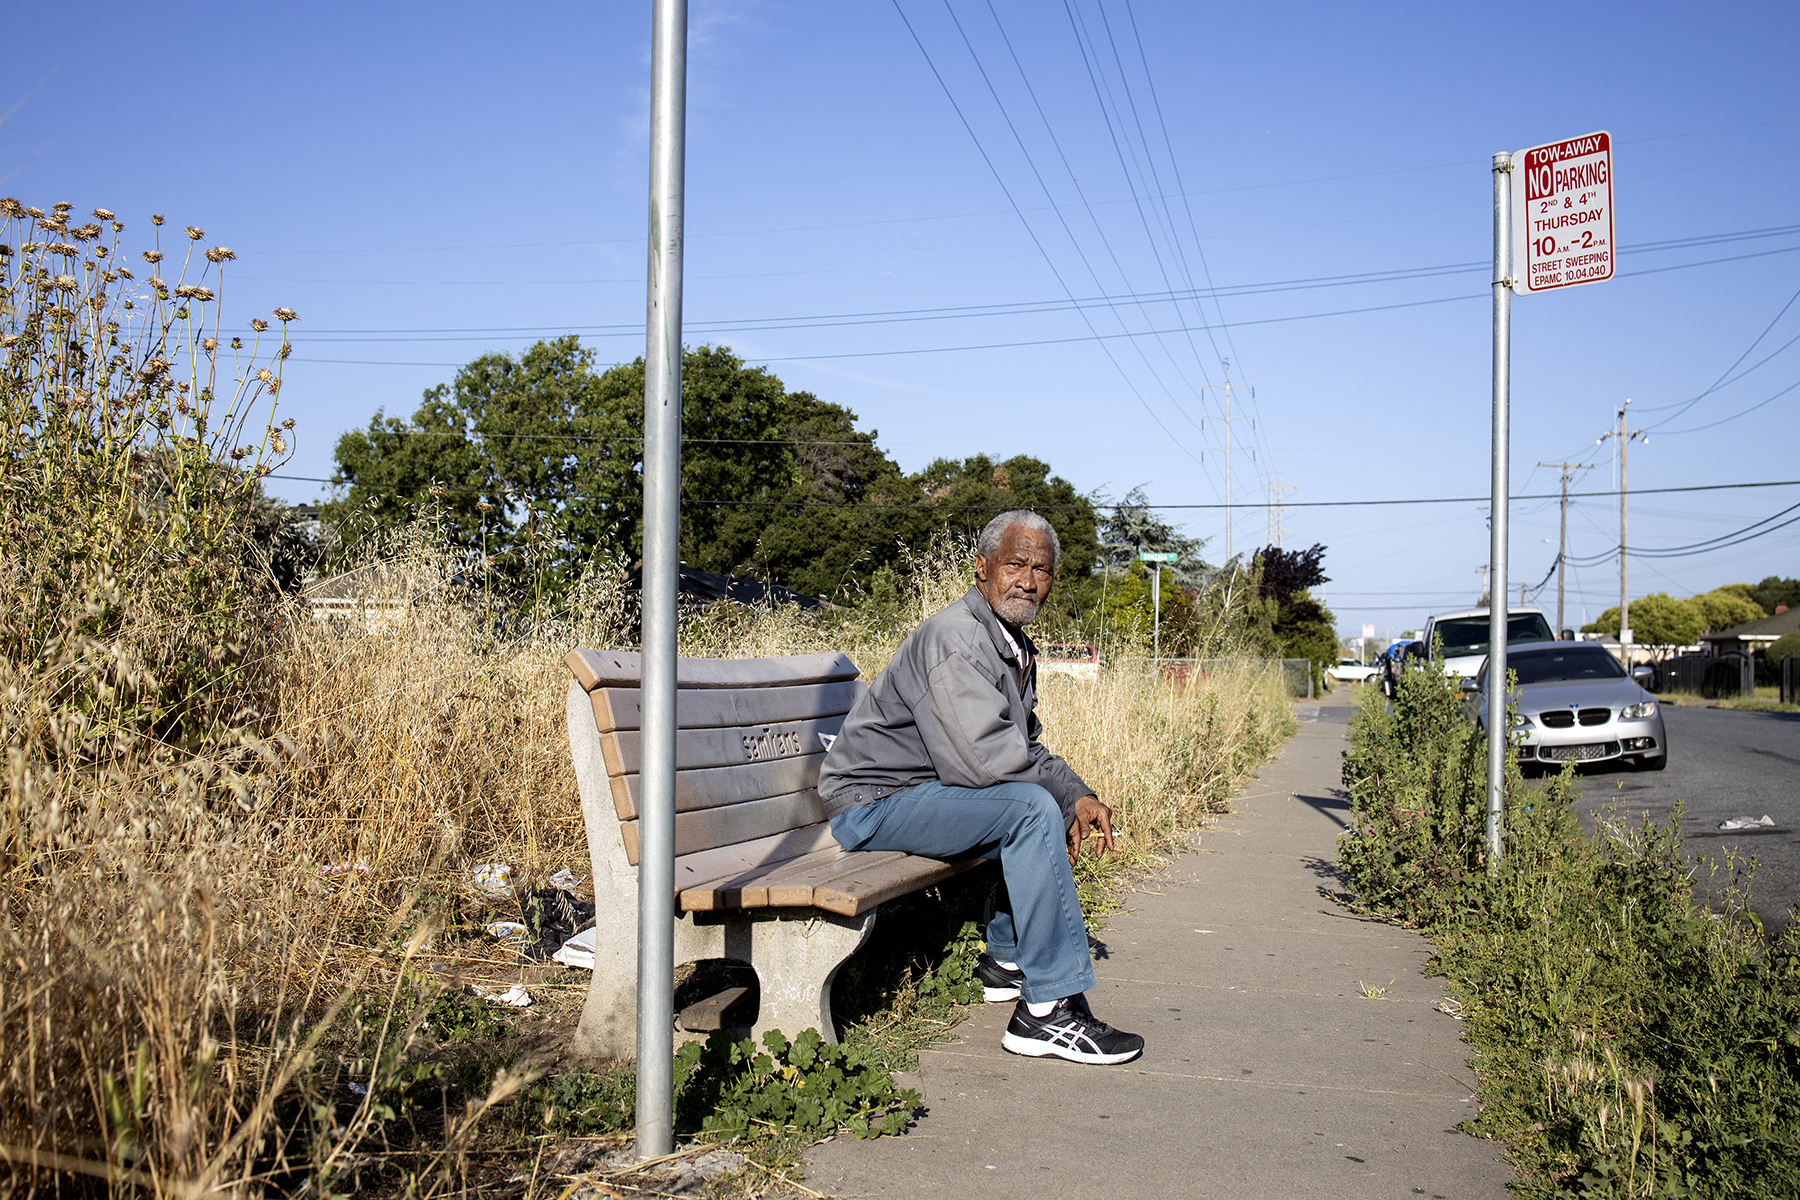 Richard White waits for a bus to take him to Palo Alto to catch the Caltrain to go to work at the corner of Purdue Avenue and Fordham Street in East Palo Alto, Calif., on June 12, 2019. White works as a custodian at SFO Airport.